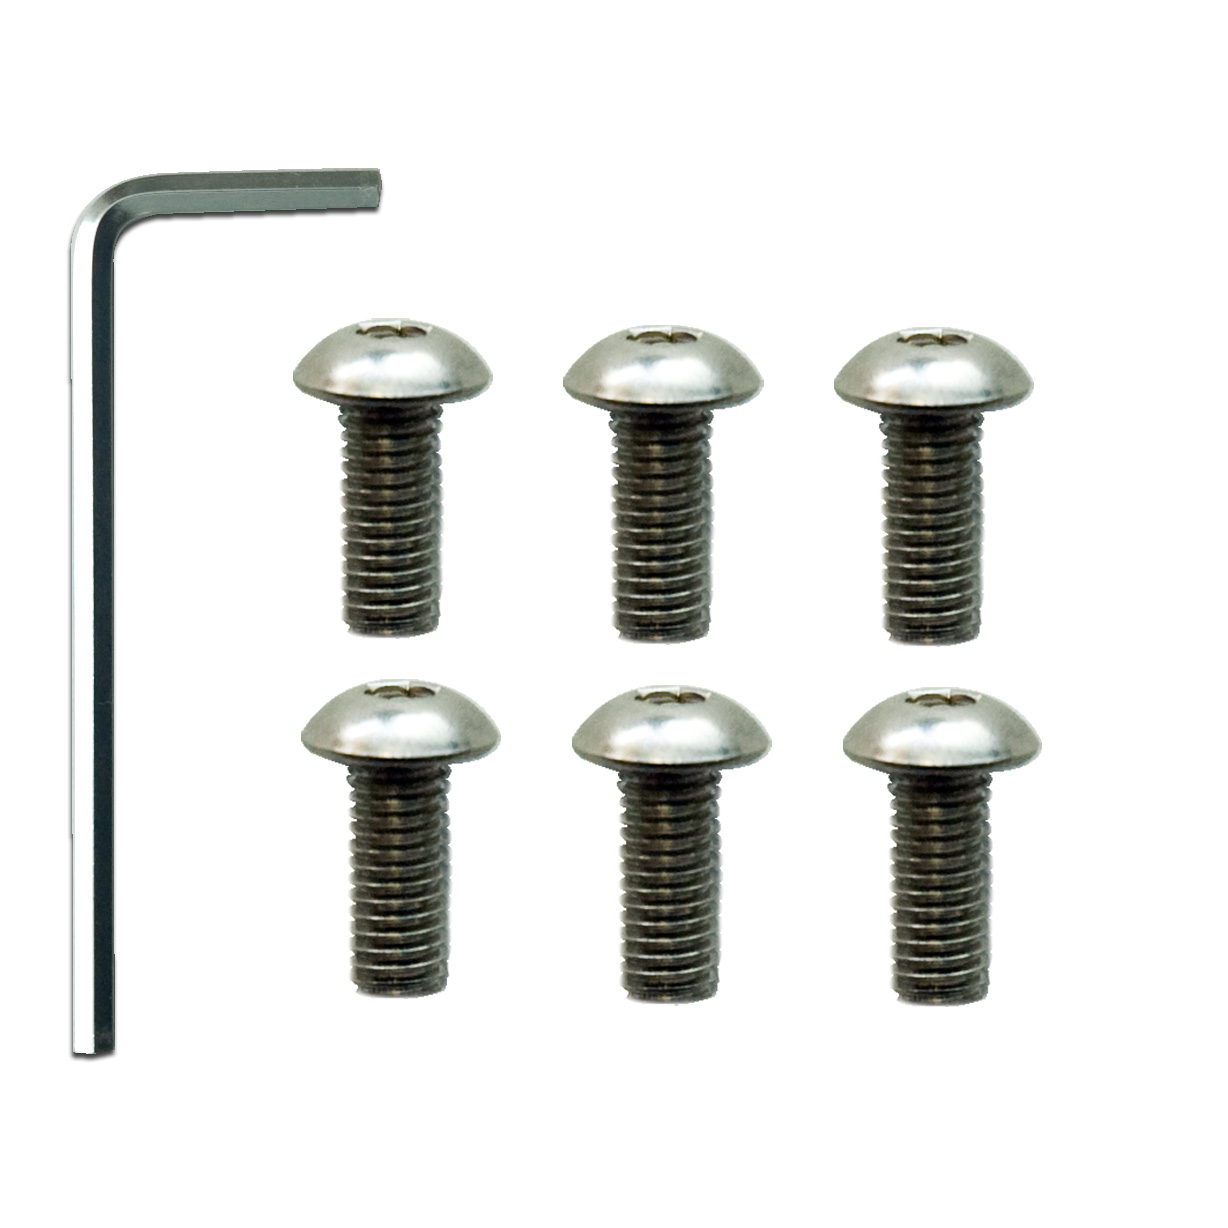 Security Screw Kit